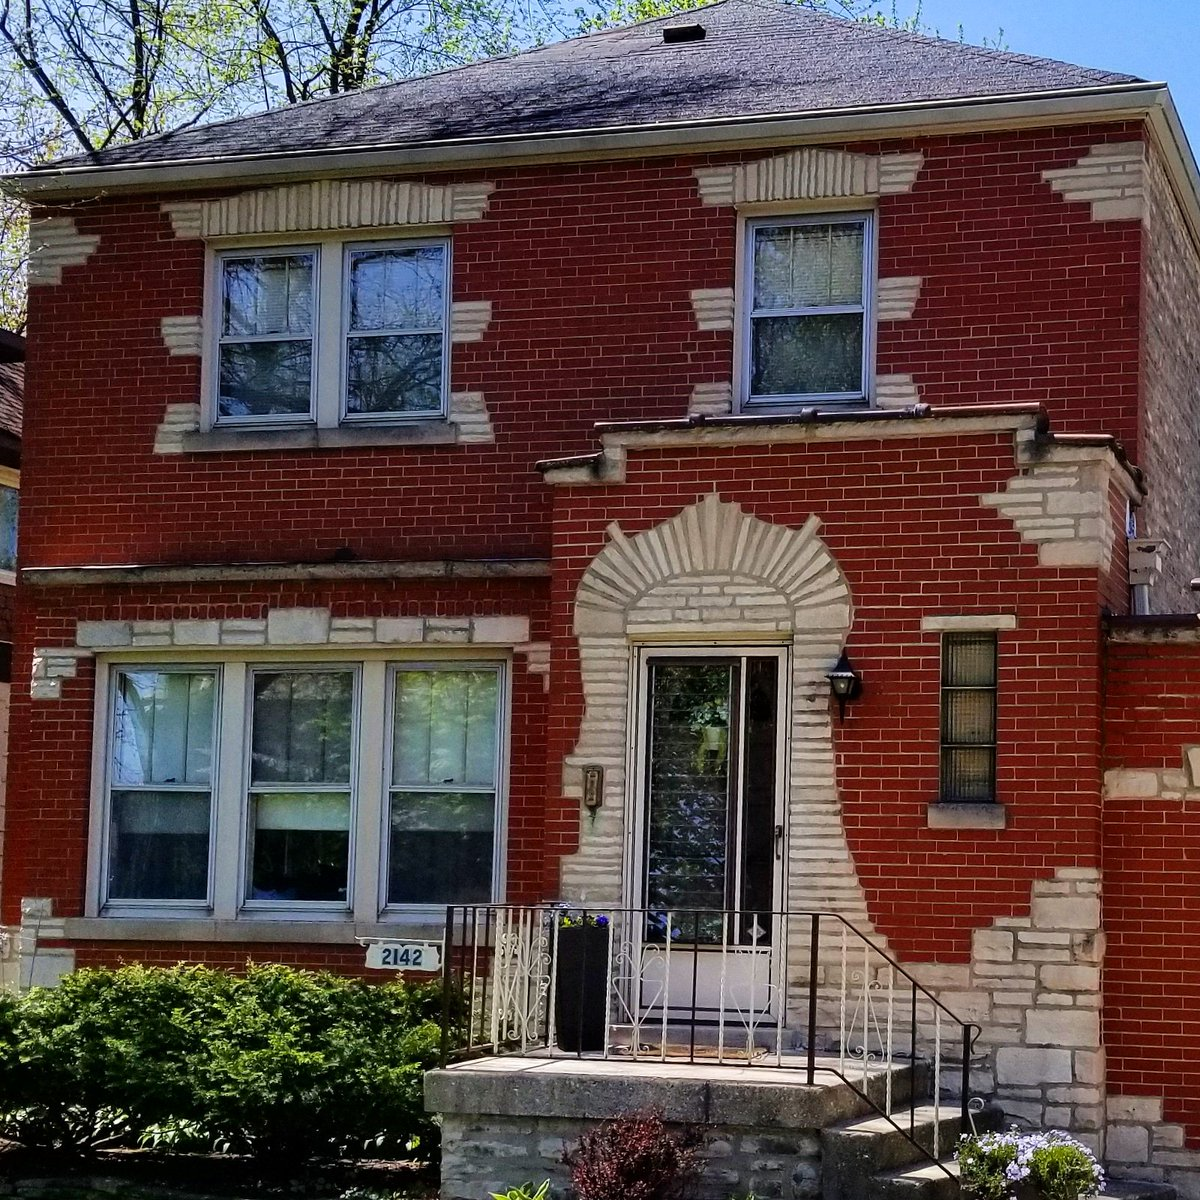 Lovely brickwork on this beautiful Chicago home. Moving soon? I can help you with that.  #architecture #brick #beautiful #chicago #WednesdayMotivation #selling #buynow #realestateagents #realtor #walkingpic.twitter.com/waocLbZ19K